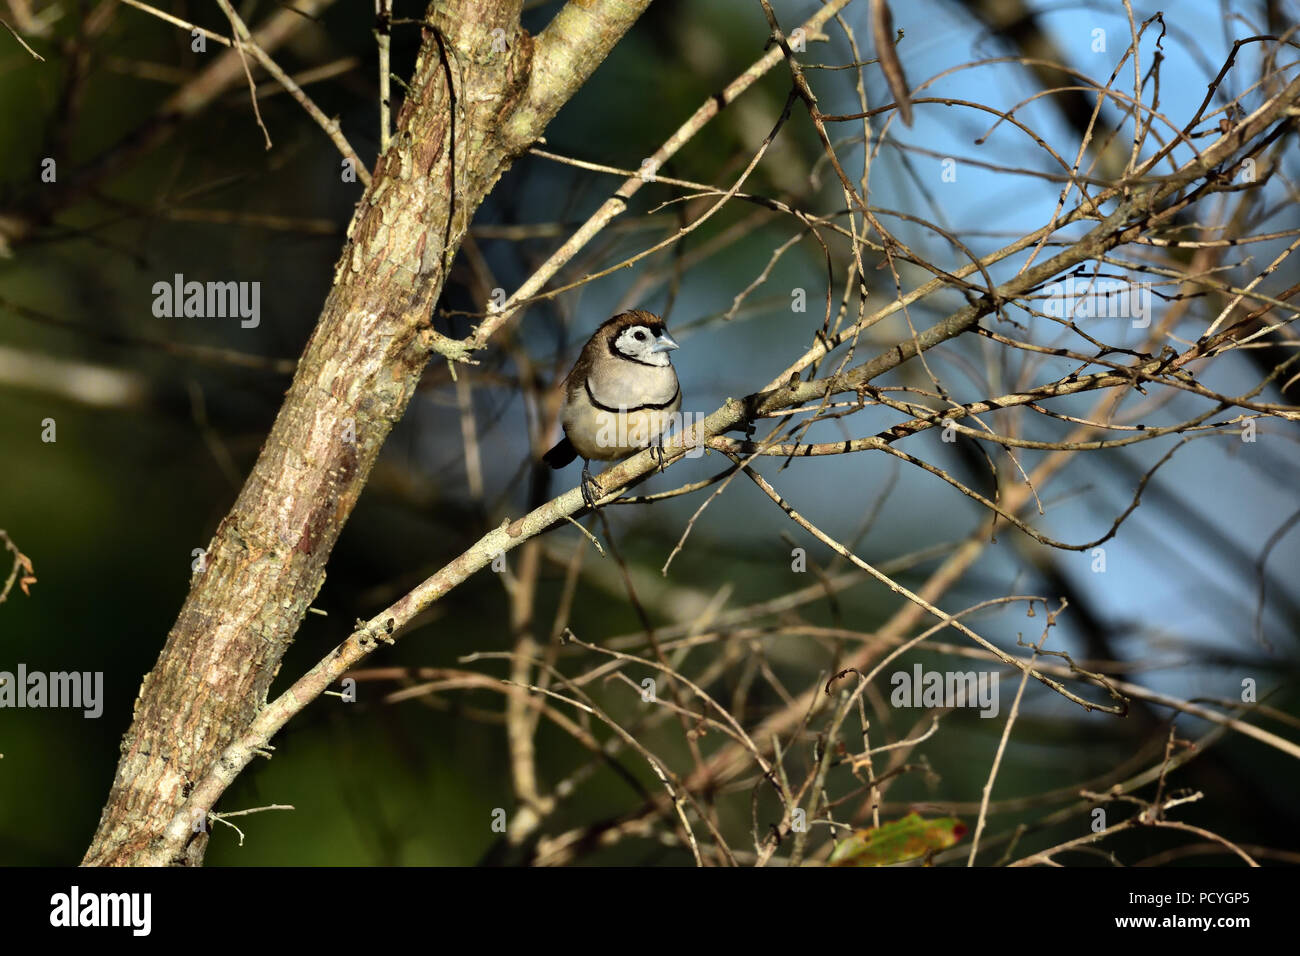 An Australian, Queensland Double-barred Finch ( Taeniopygia bichenovii ) perched on a tree branch resting in lovely soft morning light - Stock Image